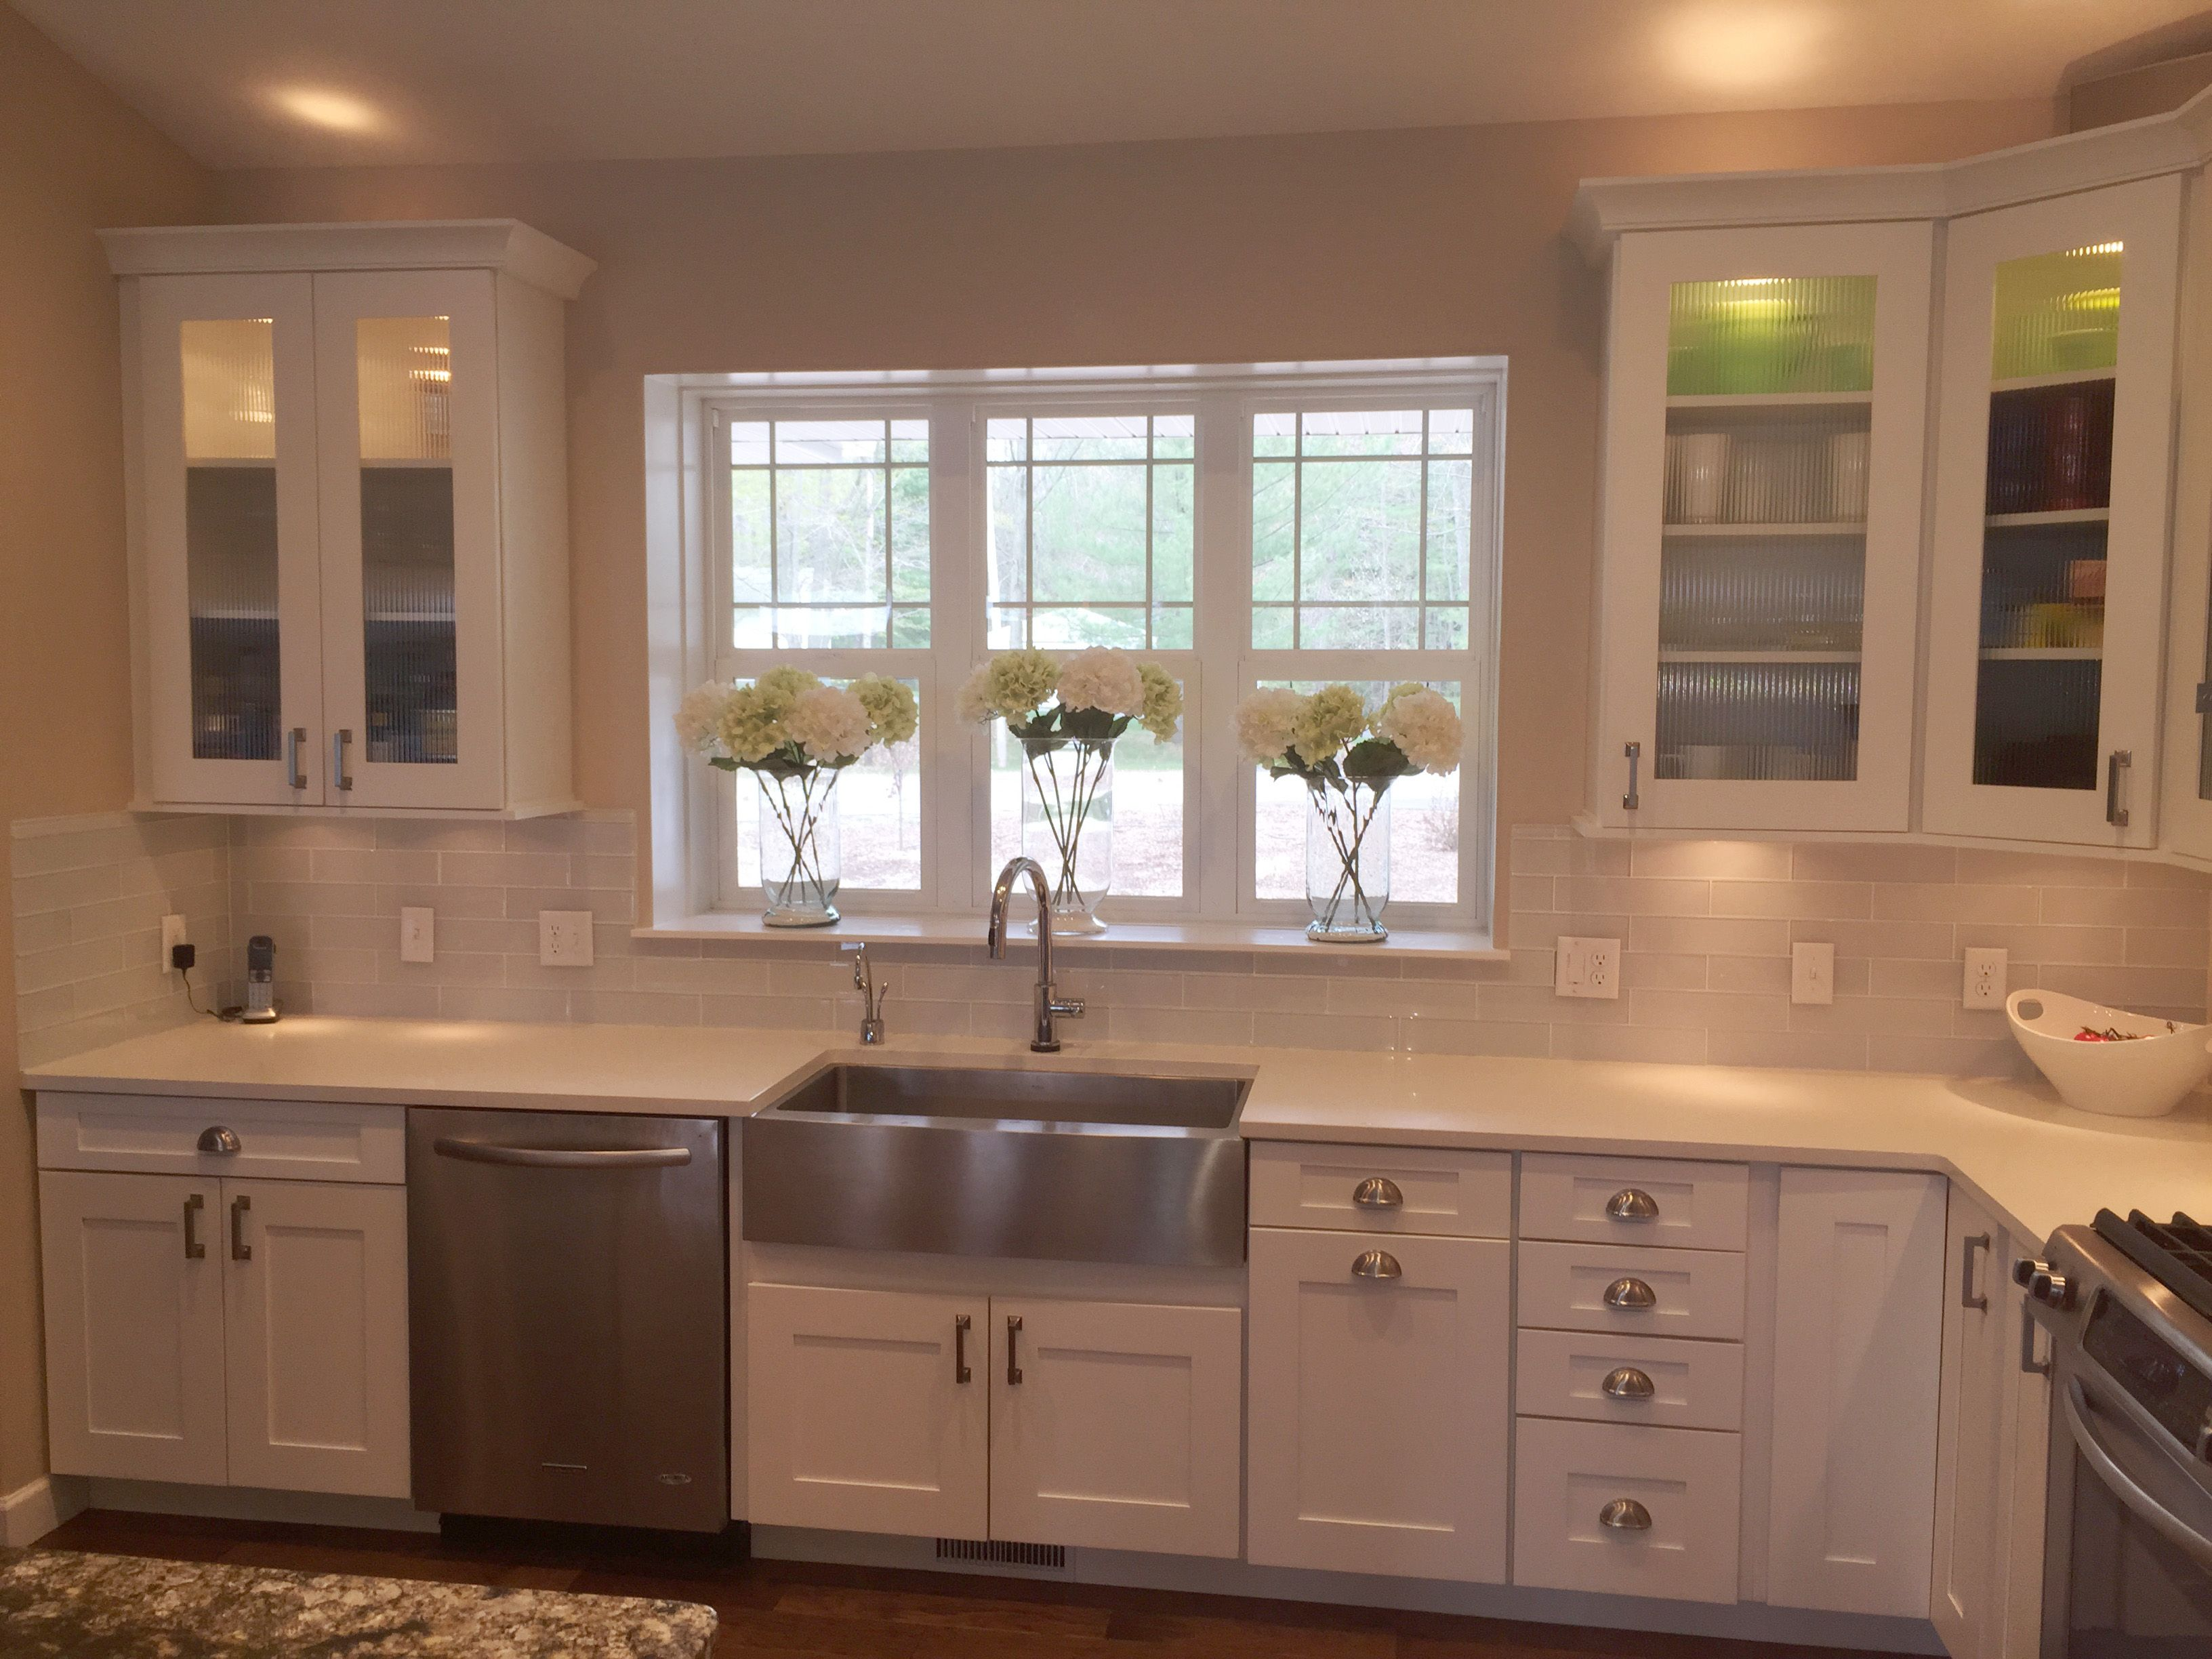 Hickory Shaker Style Kitchen Cabinets Designs With Islands White Hardware